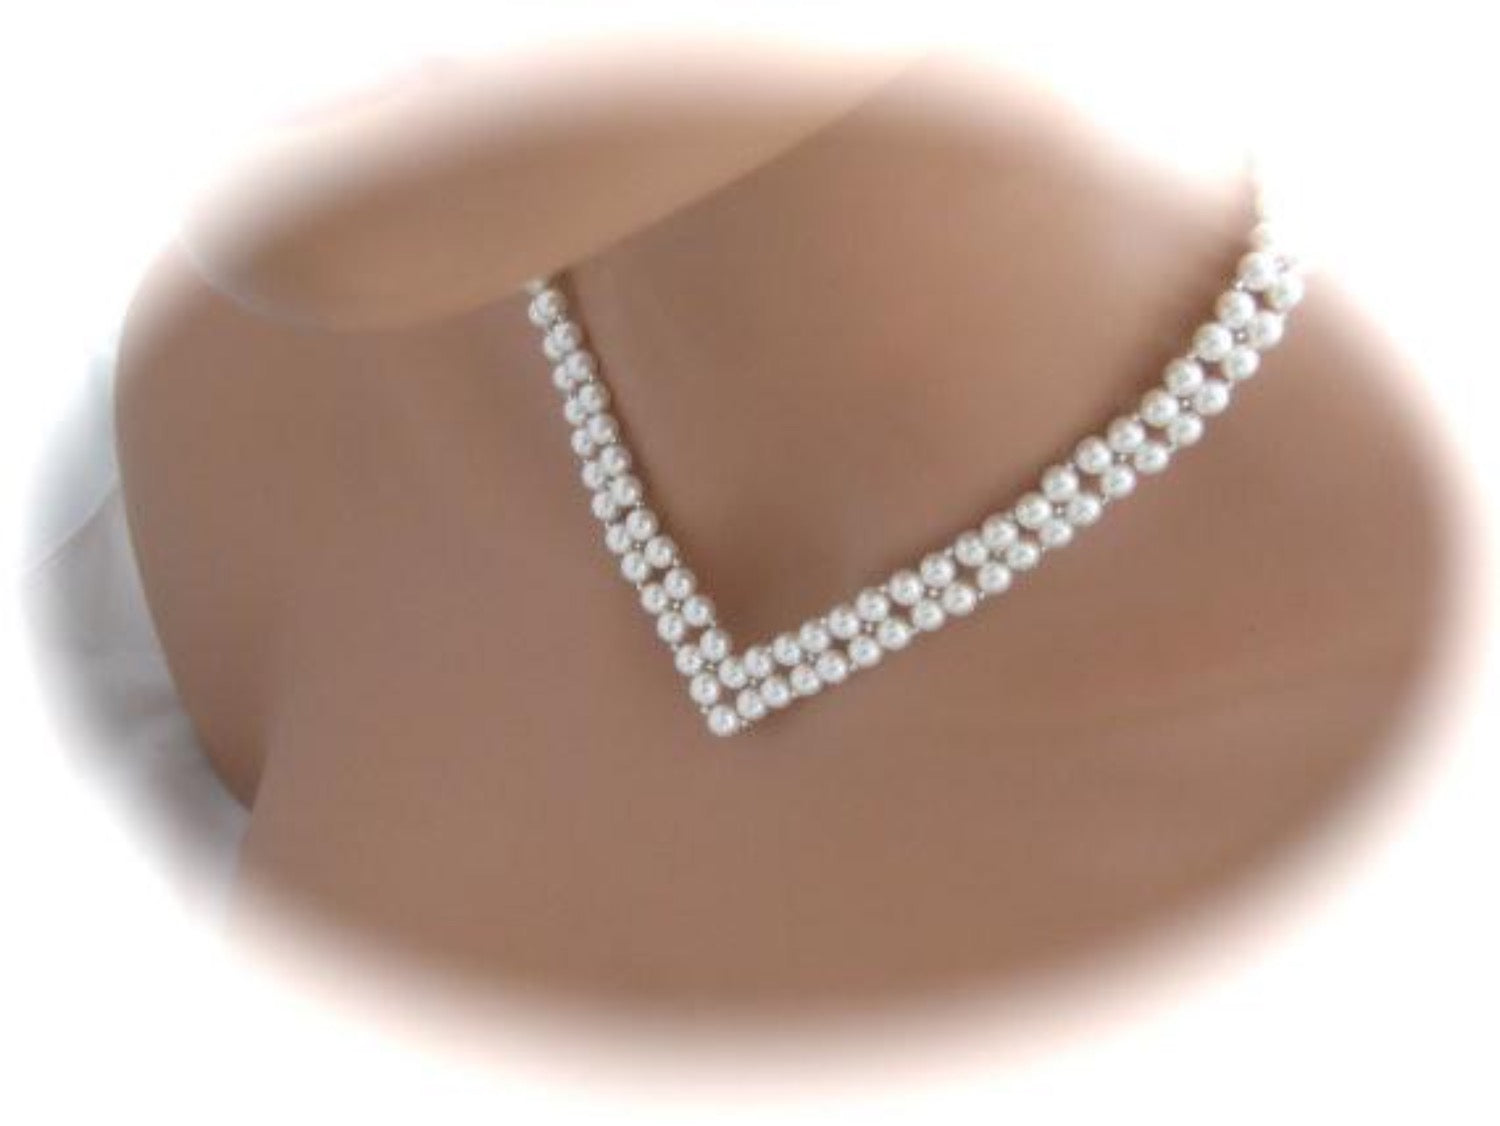 V Shaped Bridal Necklace Wedding Jewelry Pearl Necklace - Clairesbridal - 2